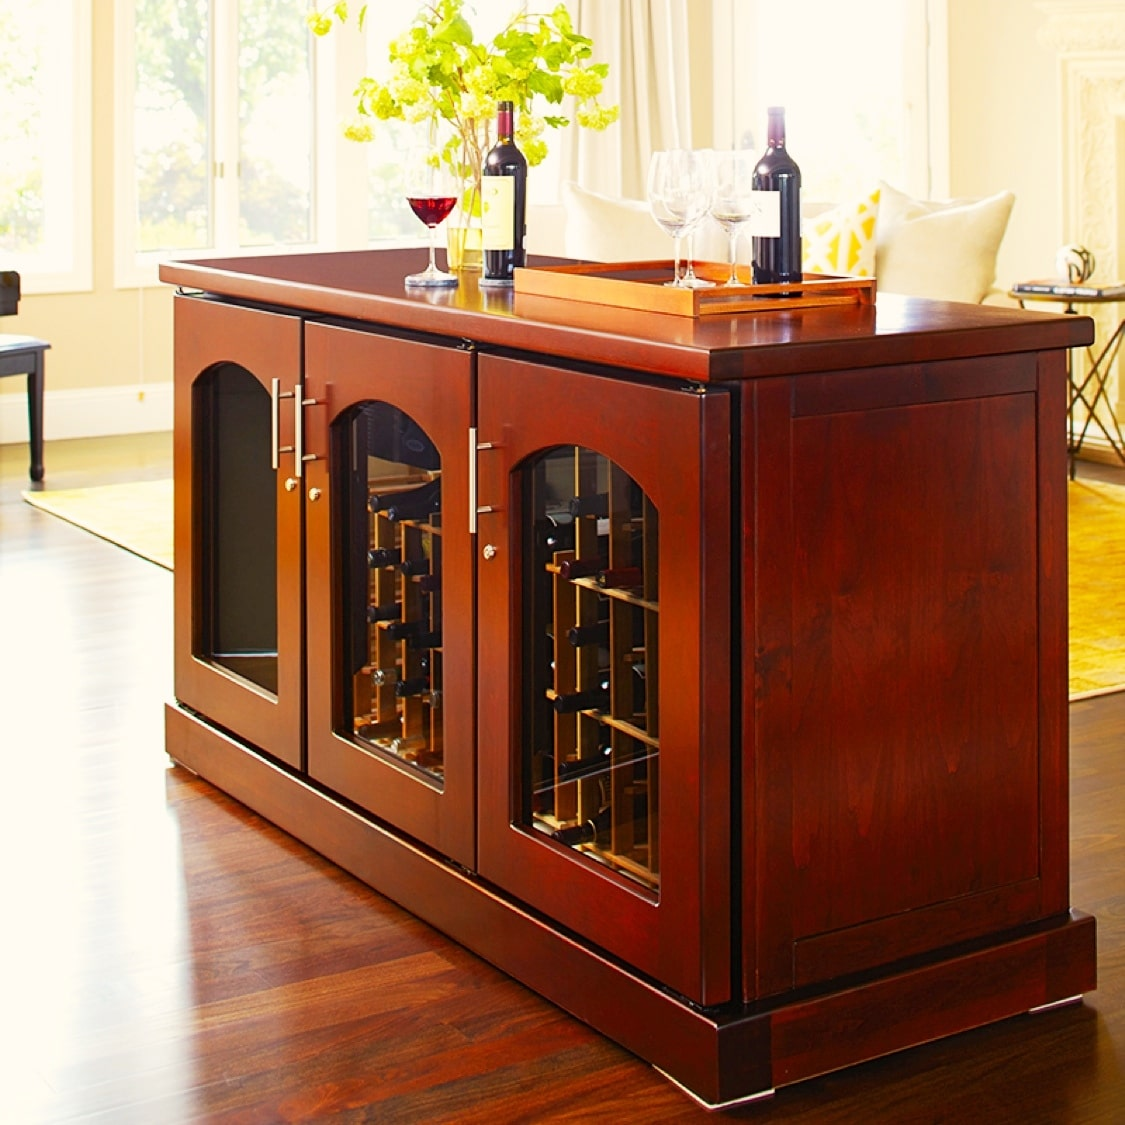 Le Cache Wine Cabinet Economical Space Savvy And Stylish Le Cache Wine Cabinets For